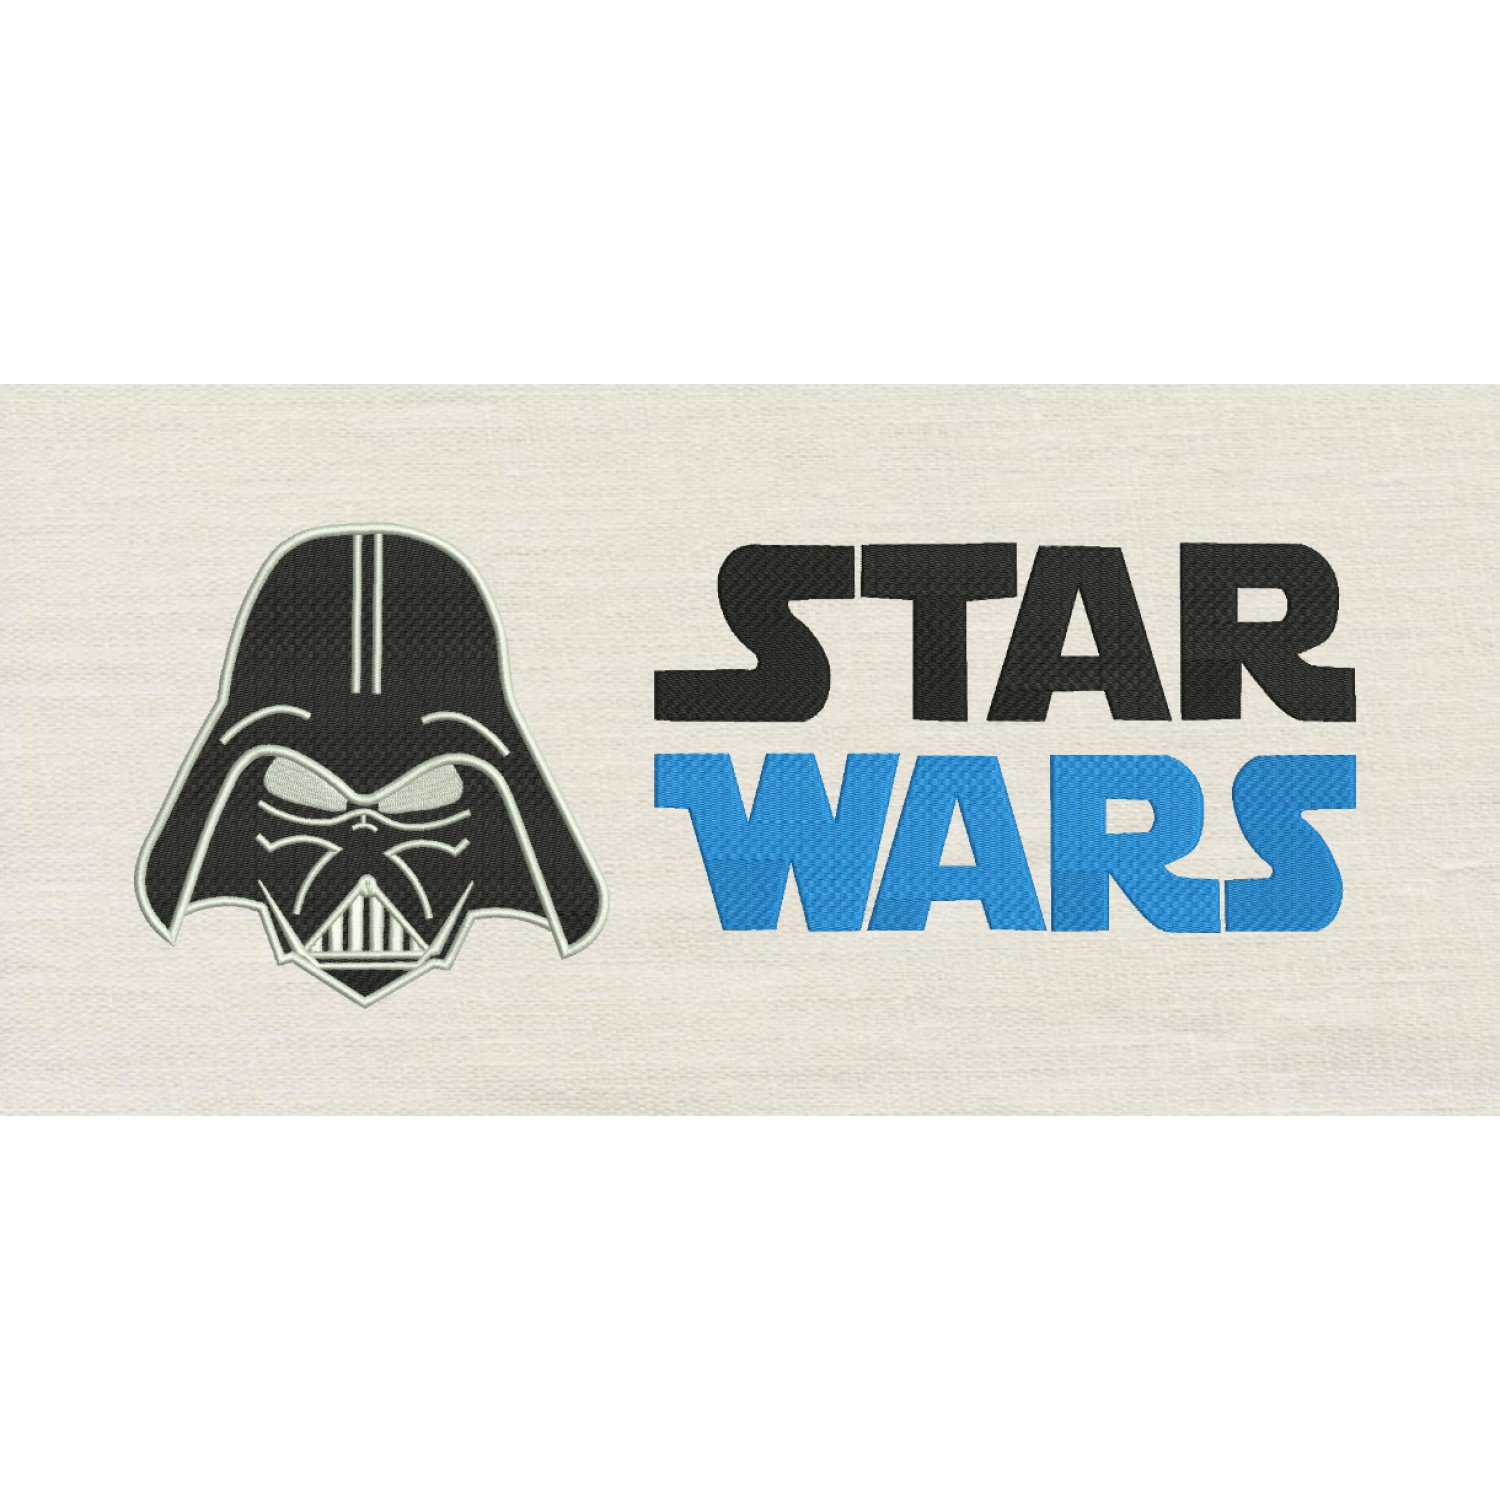 Star Wars Name with Star Wars embroidery